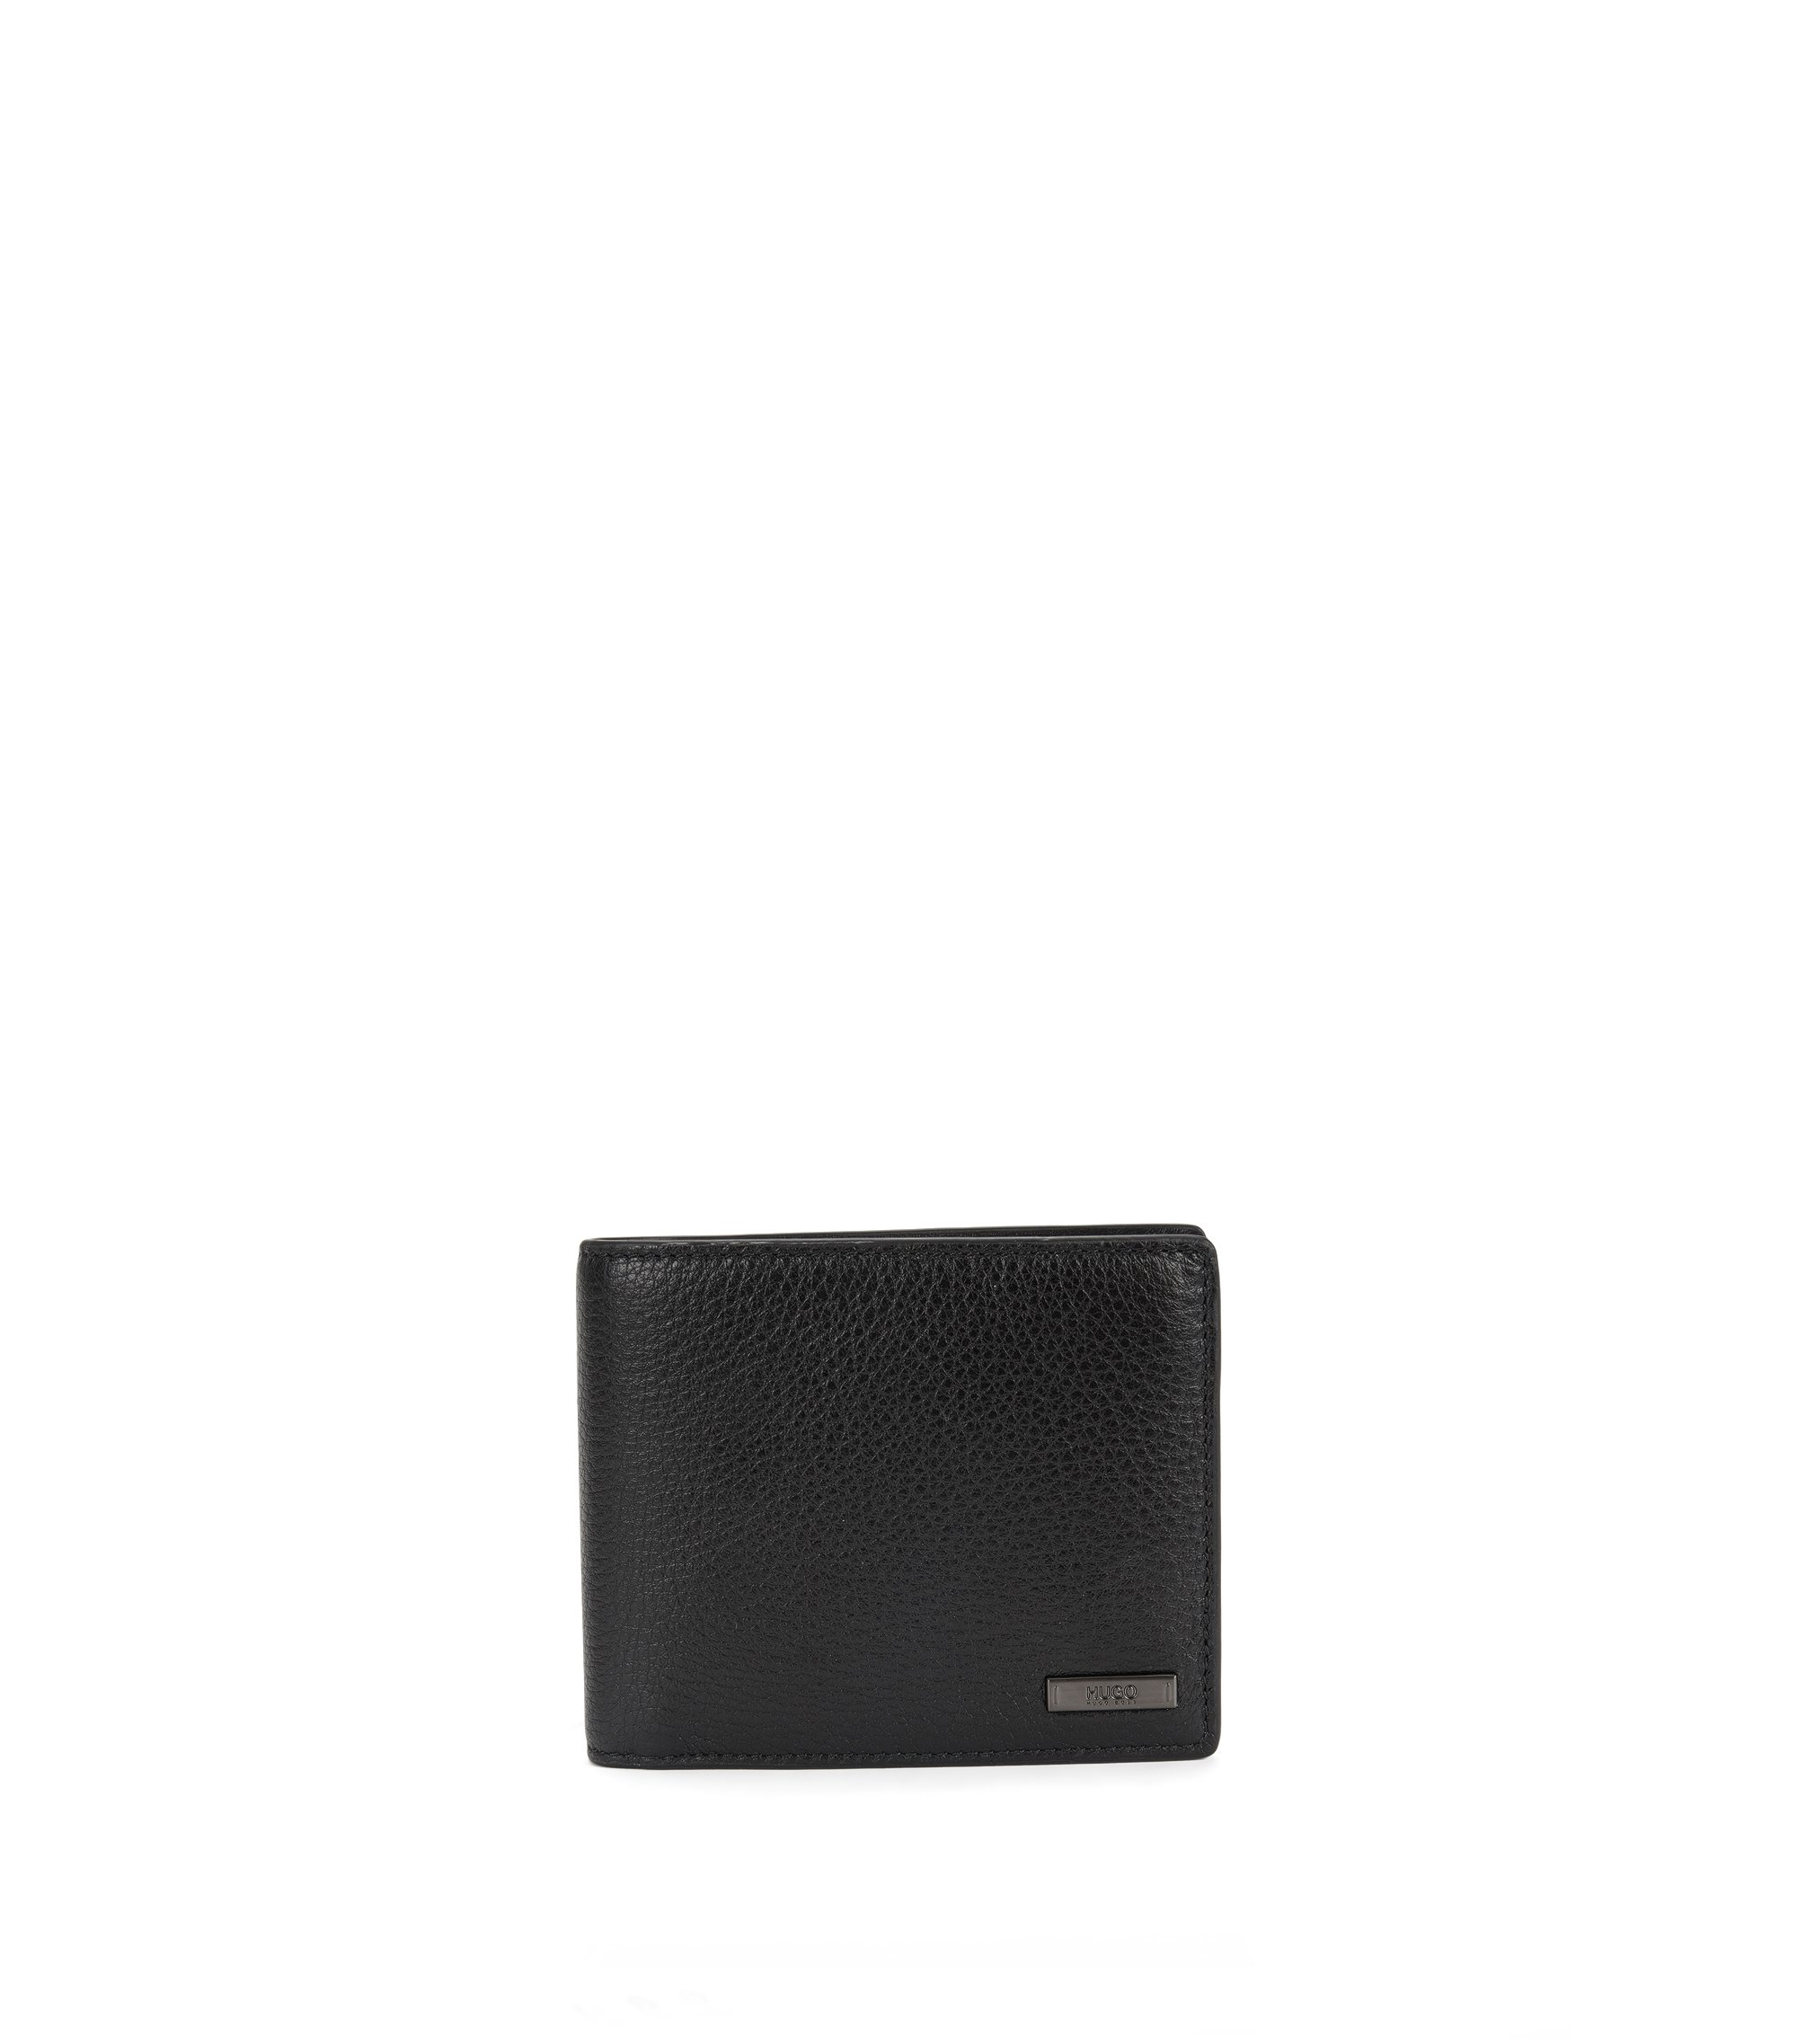 Trifold wallet in naturally grained leather, Black